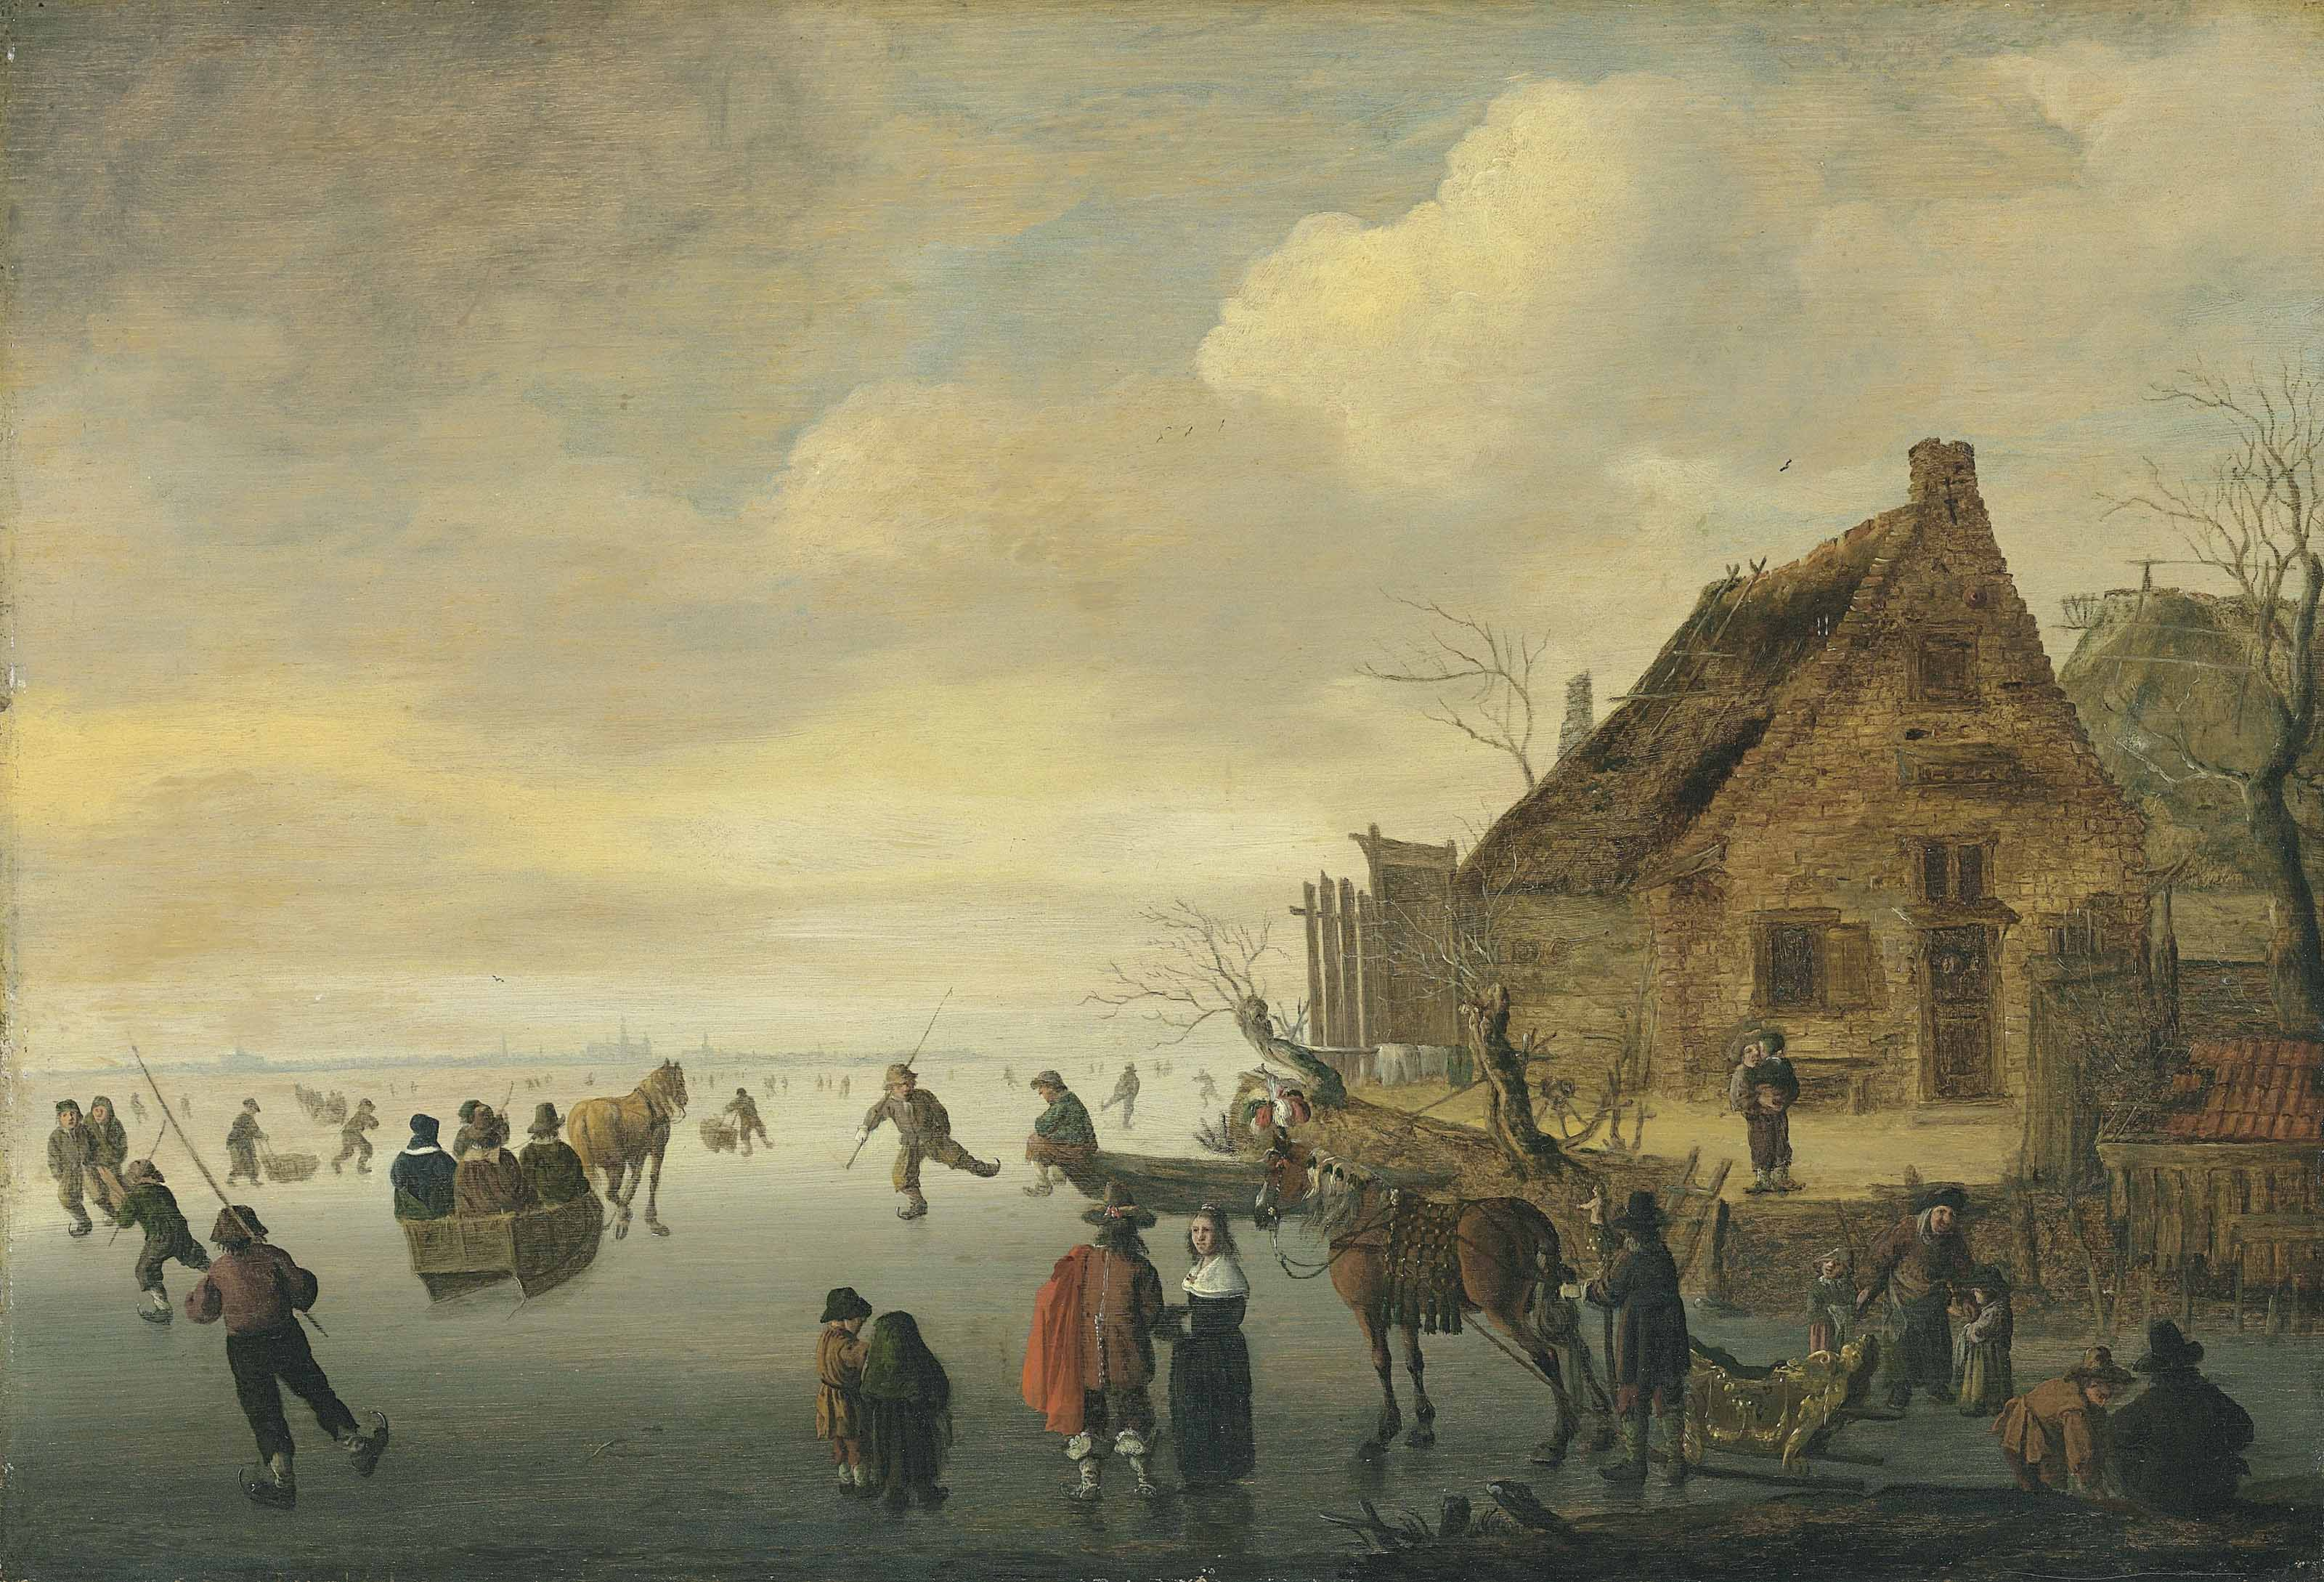 A winter landscape with horse-drawn sledges and figures skating on a frozen lake by a rural village